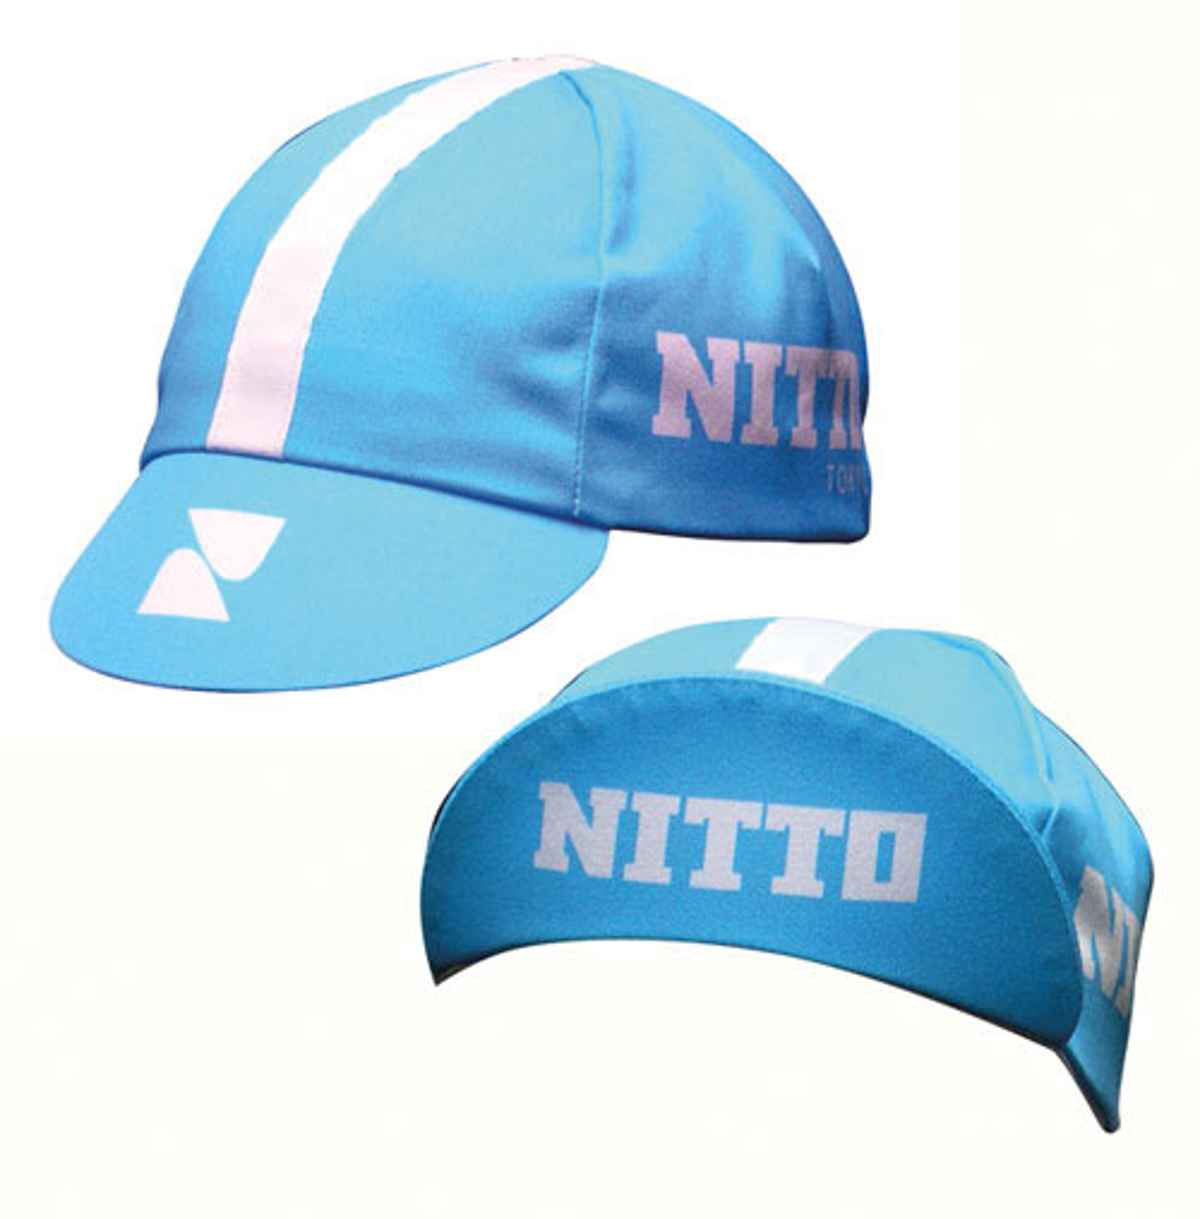 IDG Nitto cycling cap, blue - one size - 19652